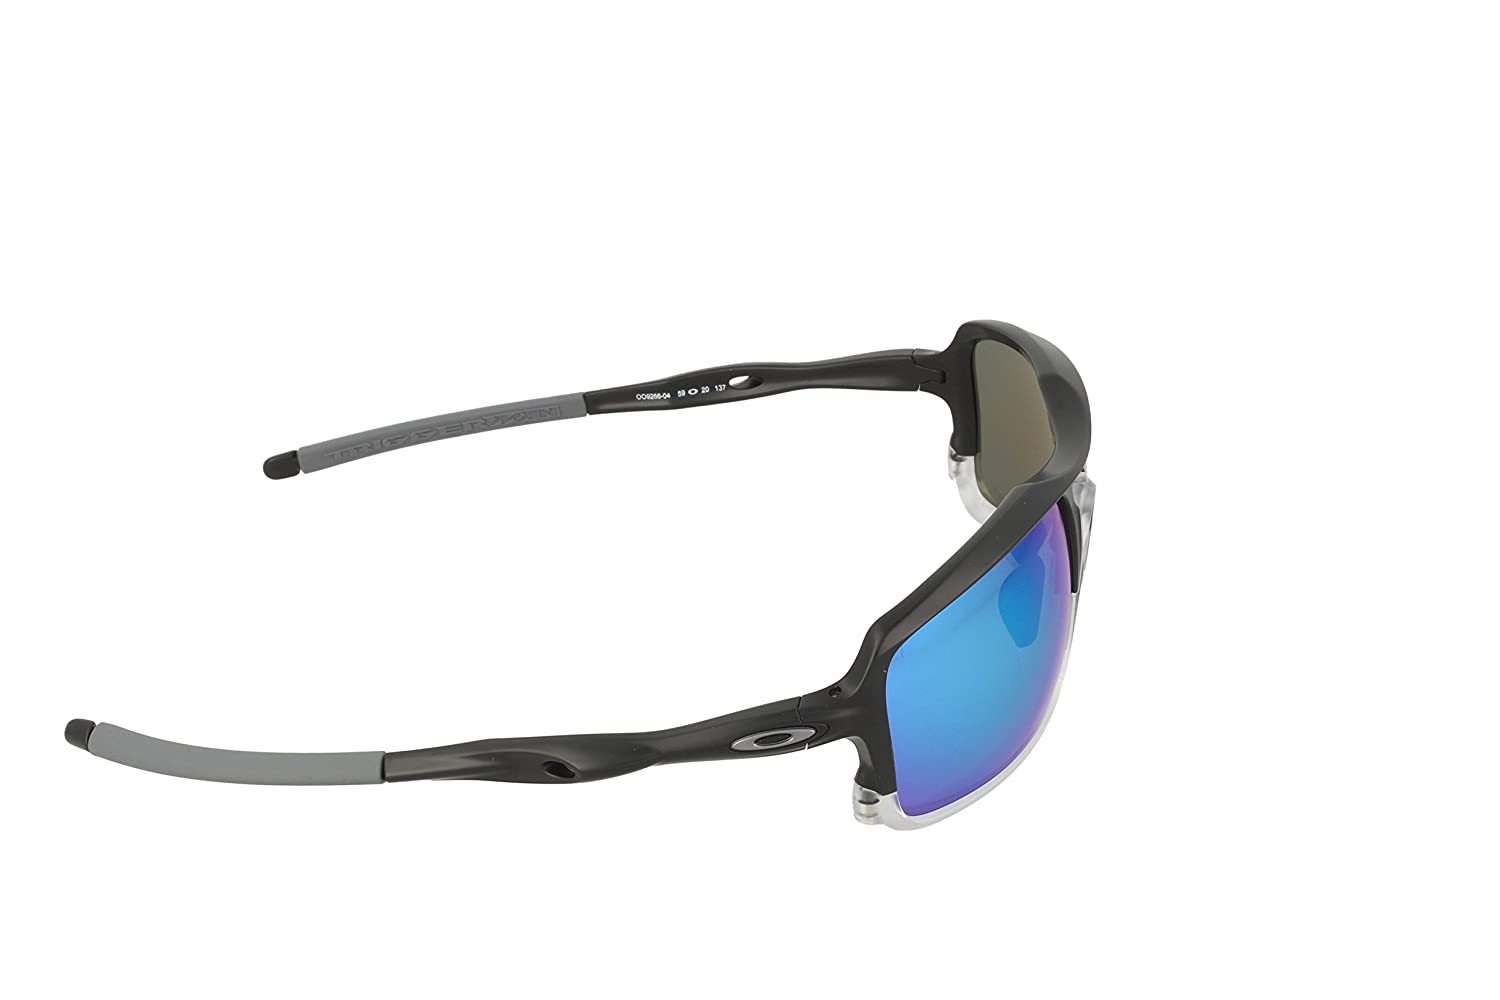 a4d8a05073 Amazon.com  Oakley Mens Triggerman Sunglasses